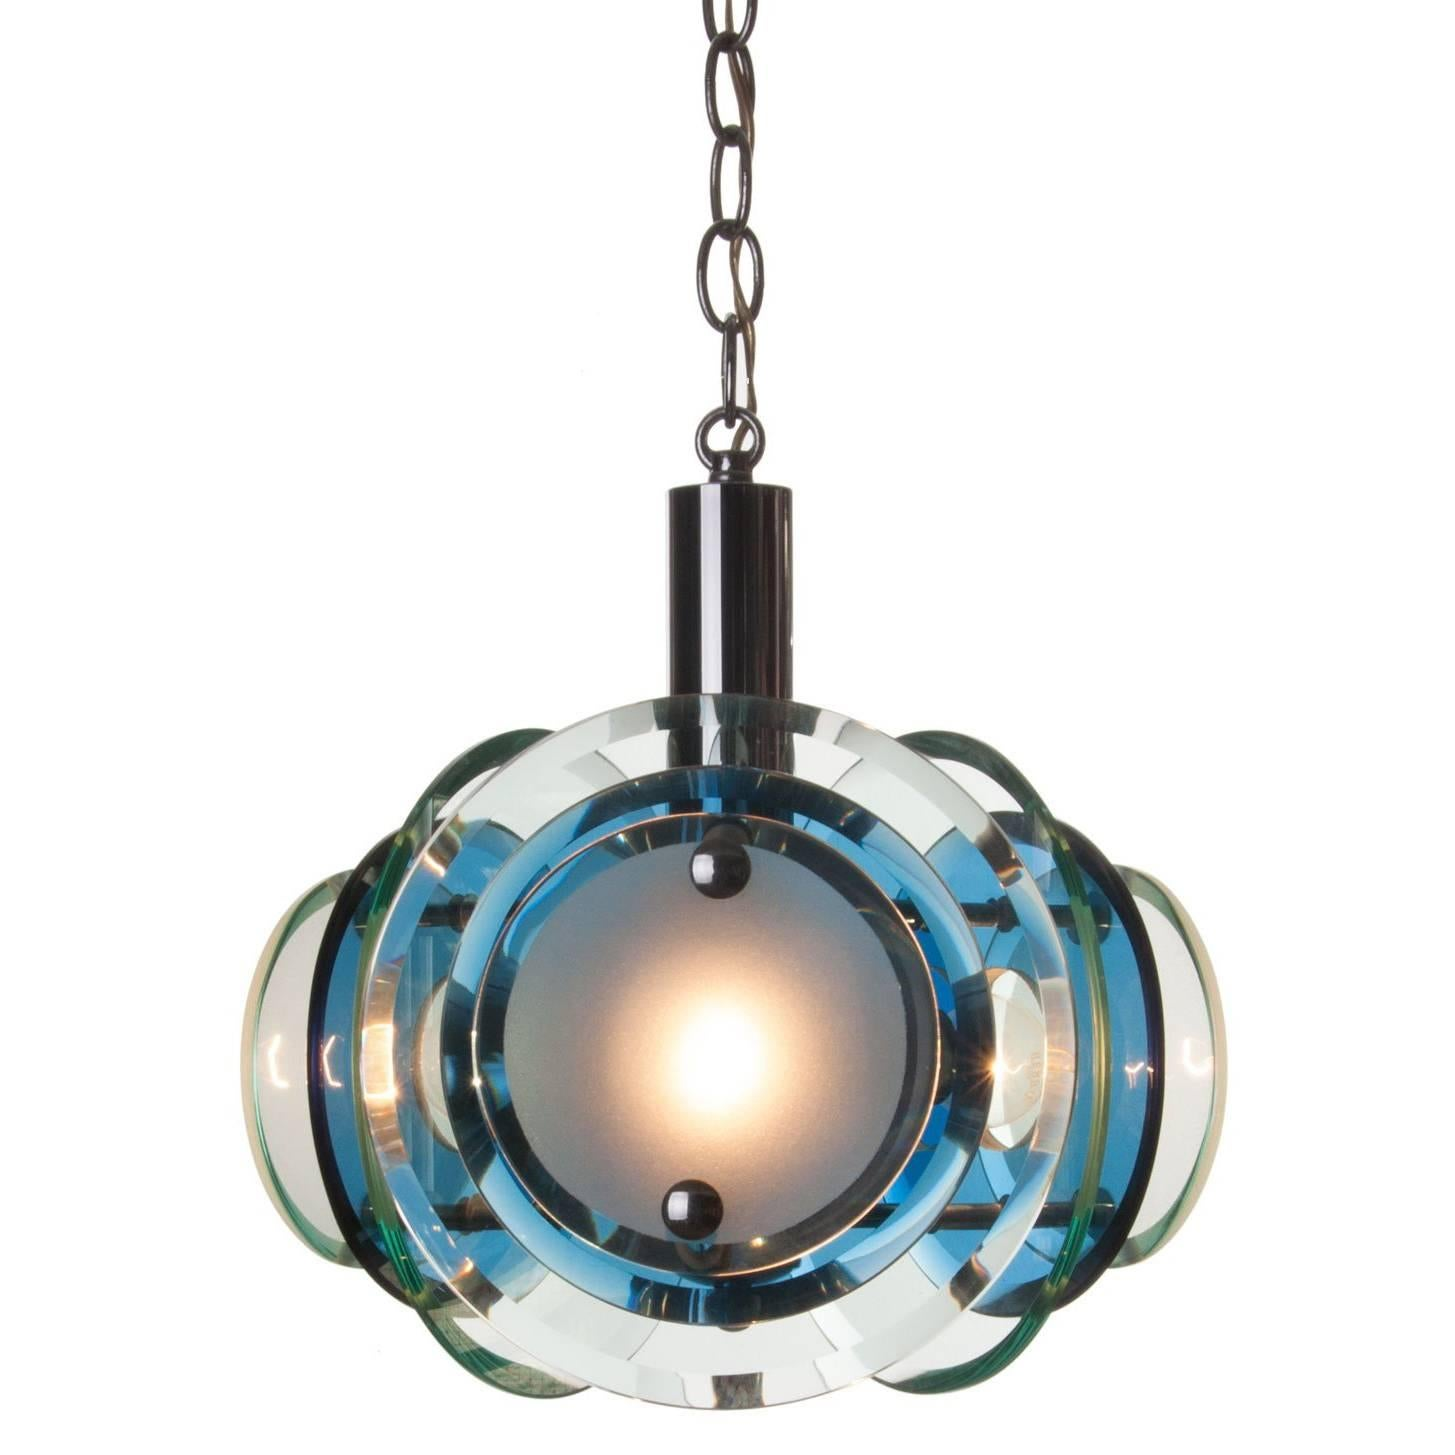 1970s Chrome and Glass Pendant Attributed to Veca